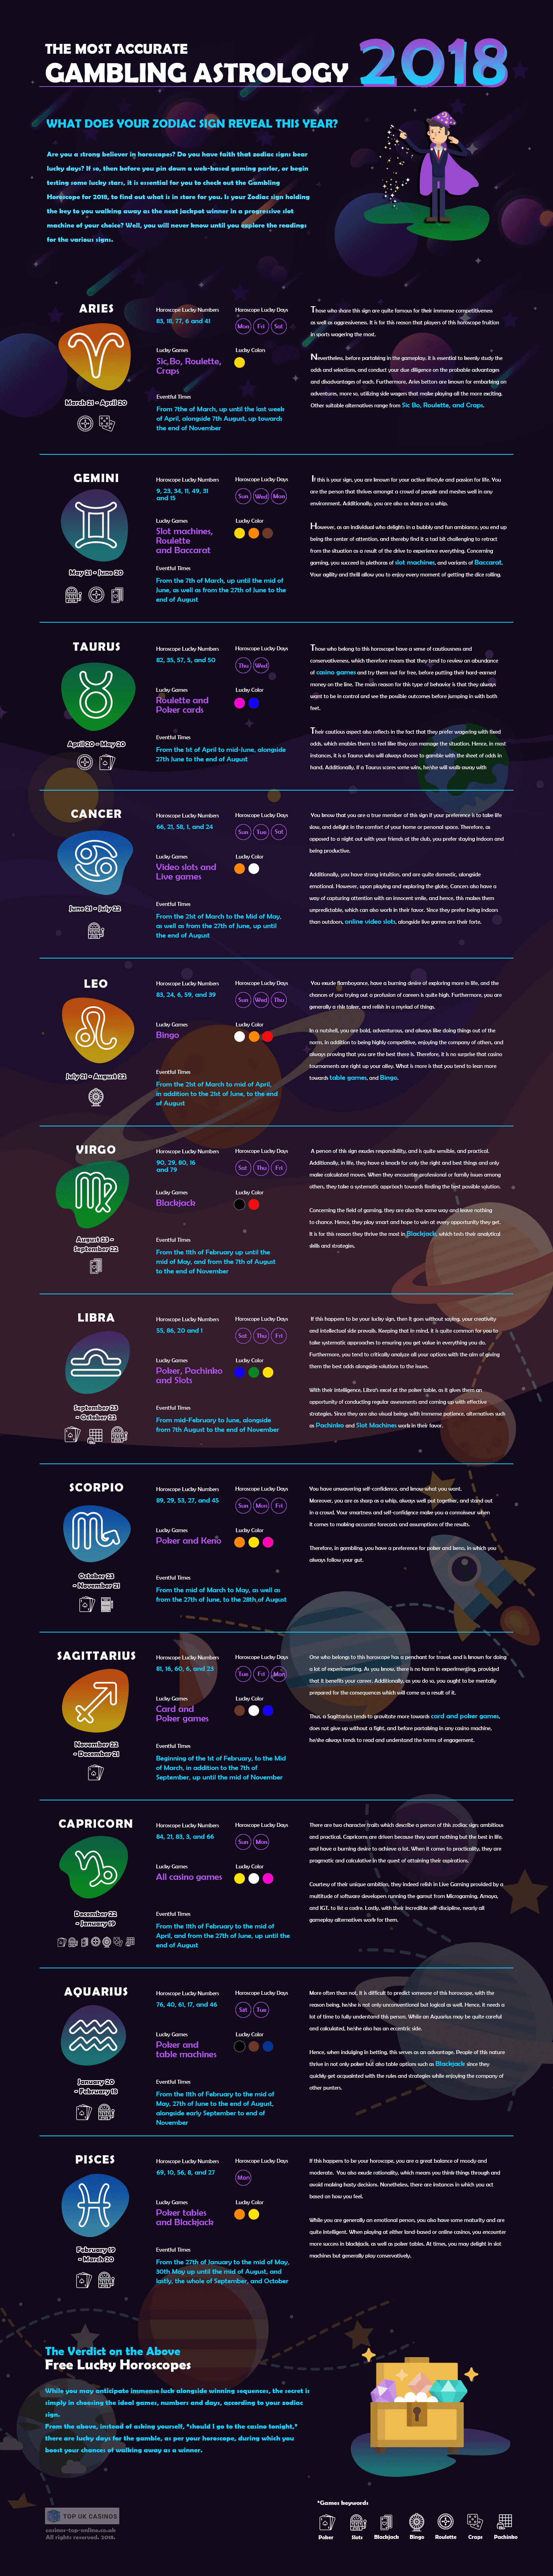 infographic 2018 horoscope